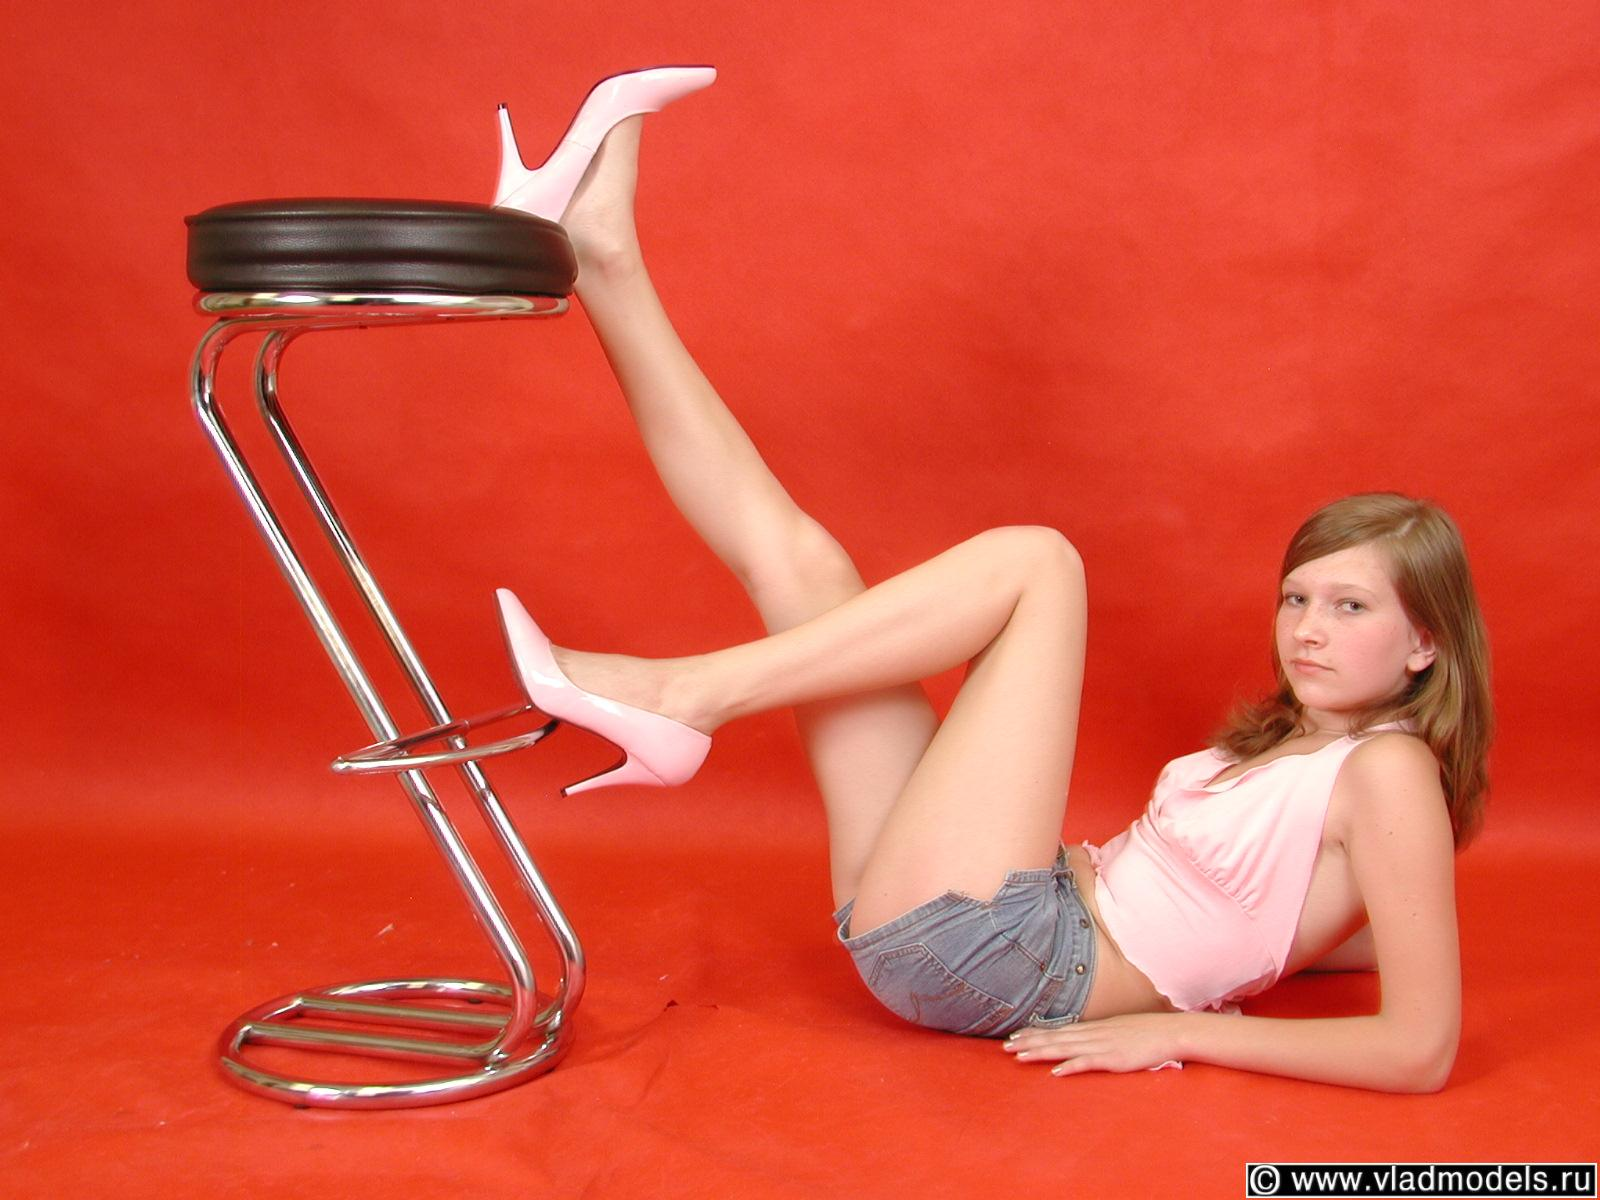 images of Teen In Pantyhose Stocking Lingerie